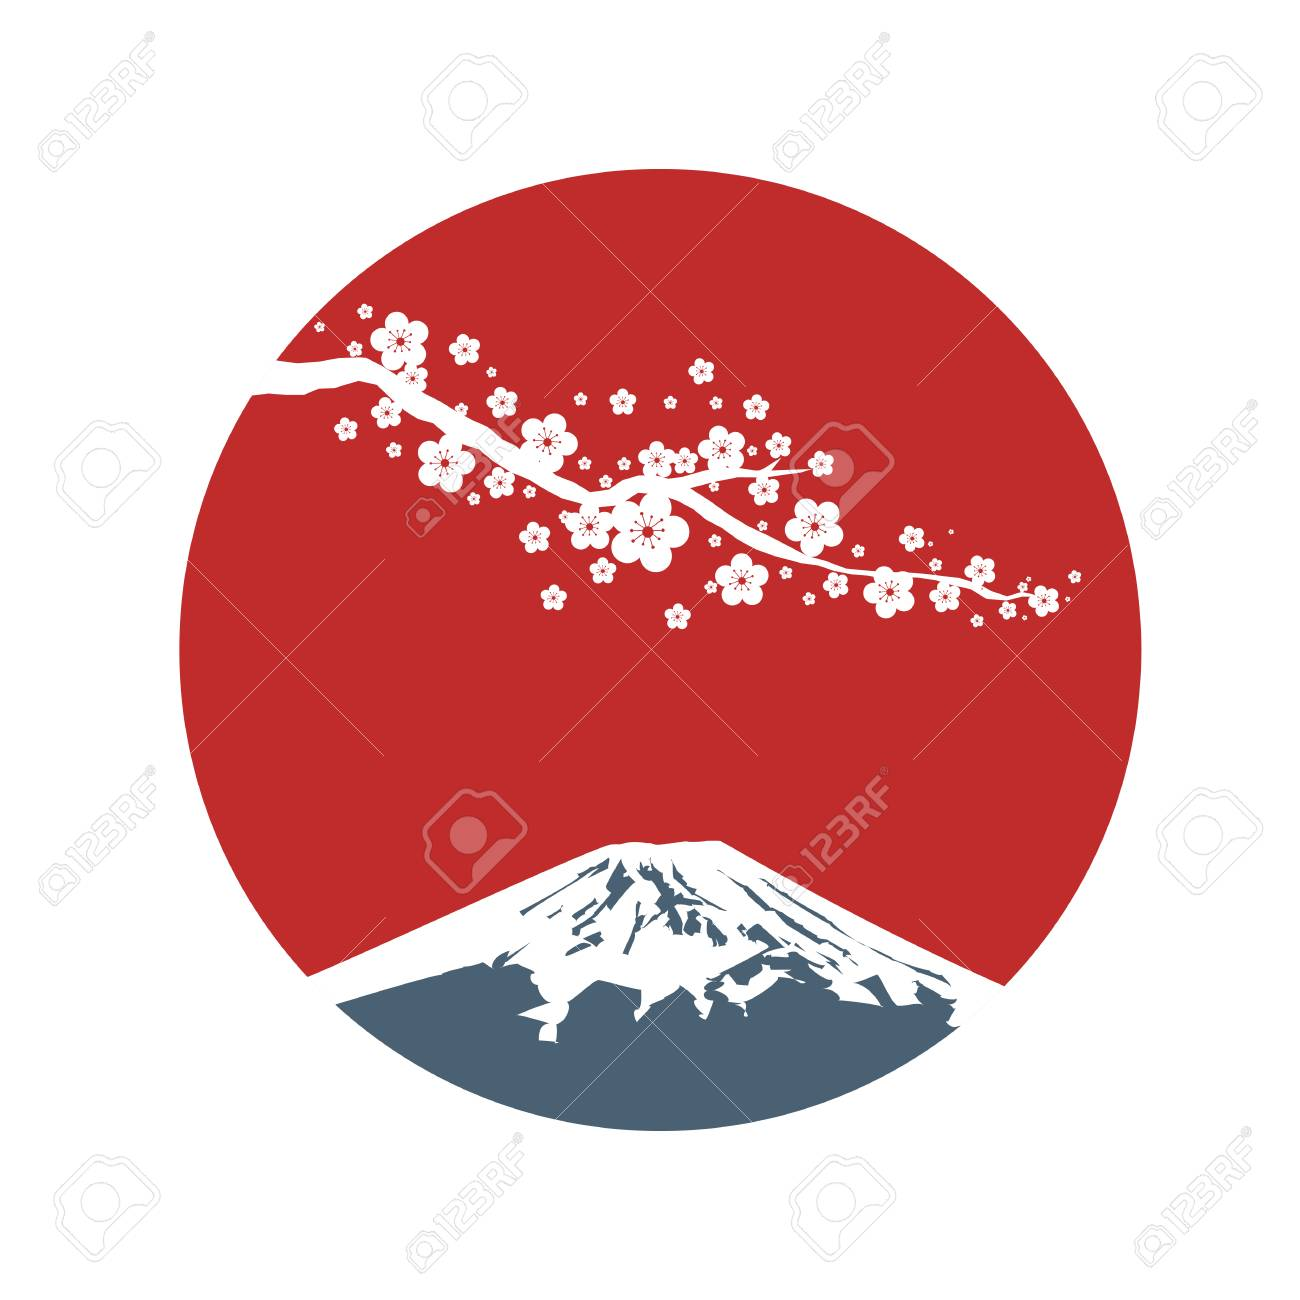 Cherry blossom branch with red sun in Asian style. Sakura blossom and sunrise. Japanese symbols mount Fuji. Vector illustration. - 96066919